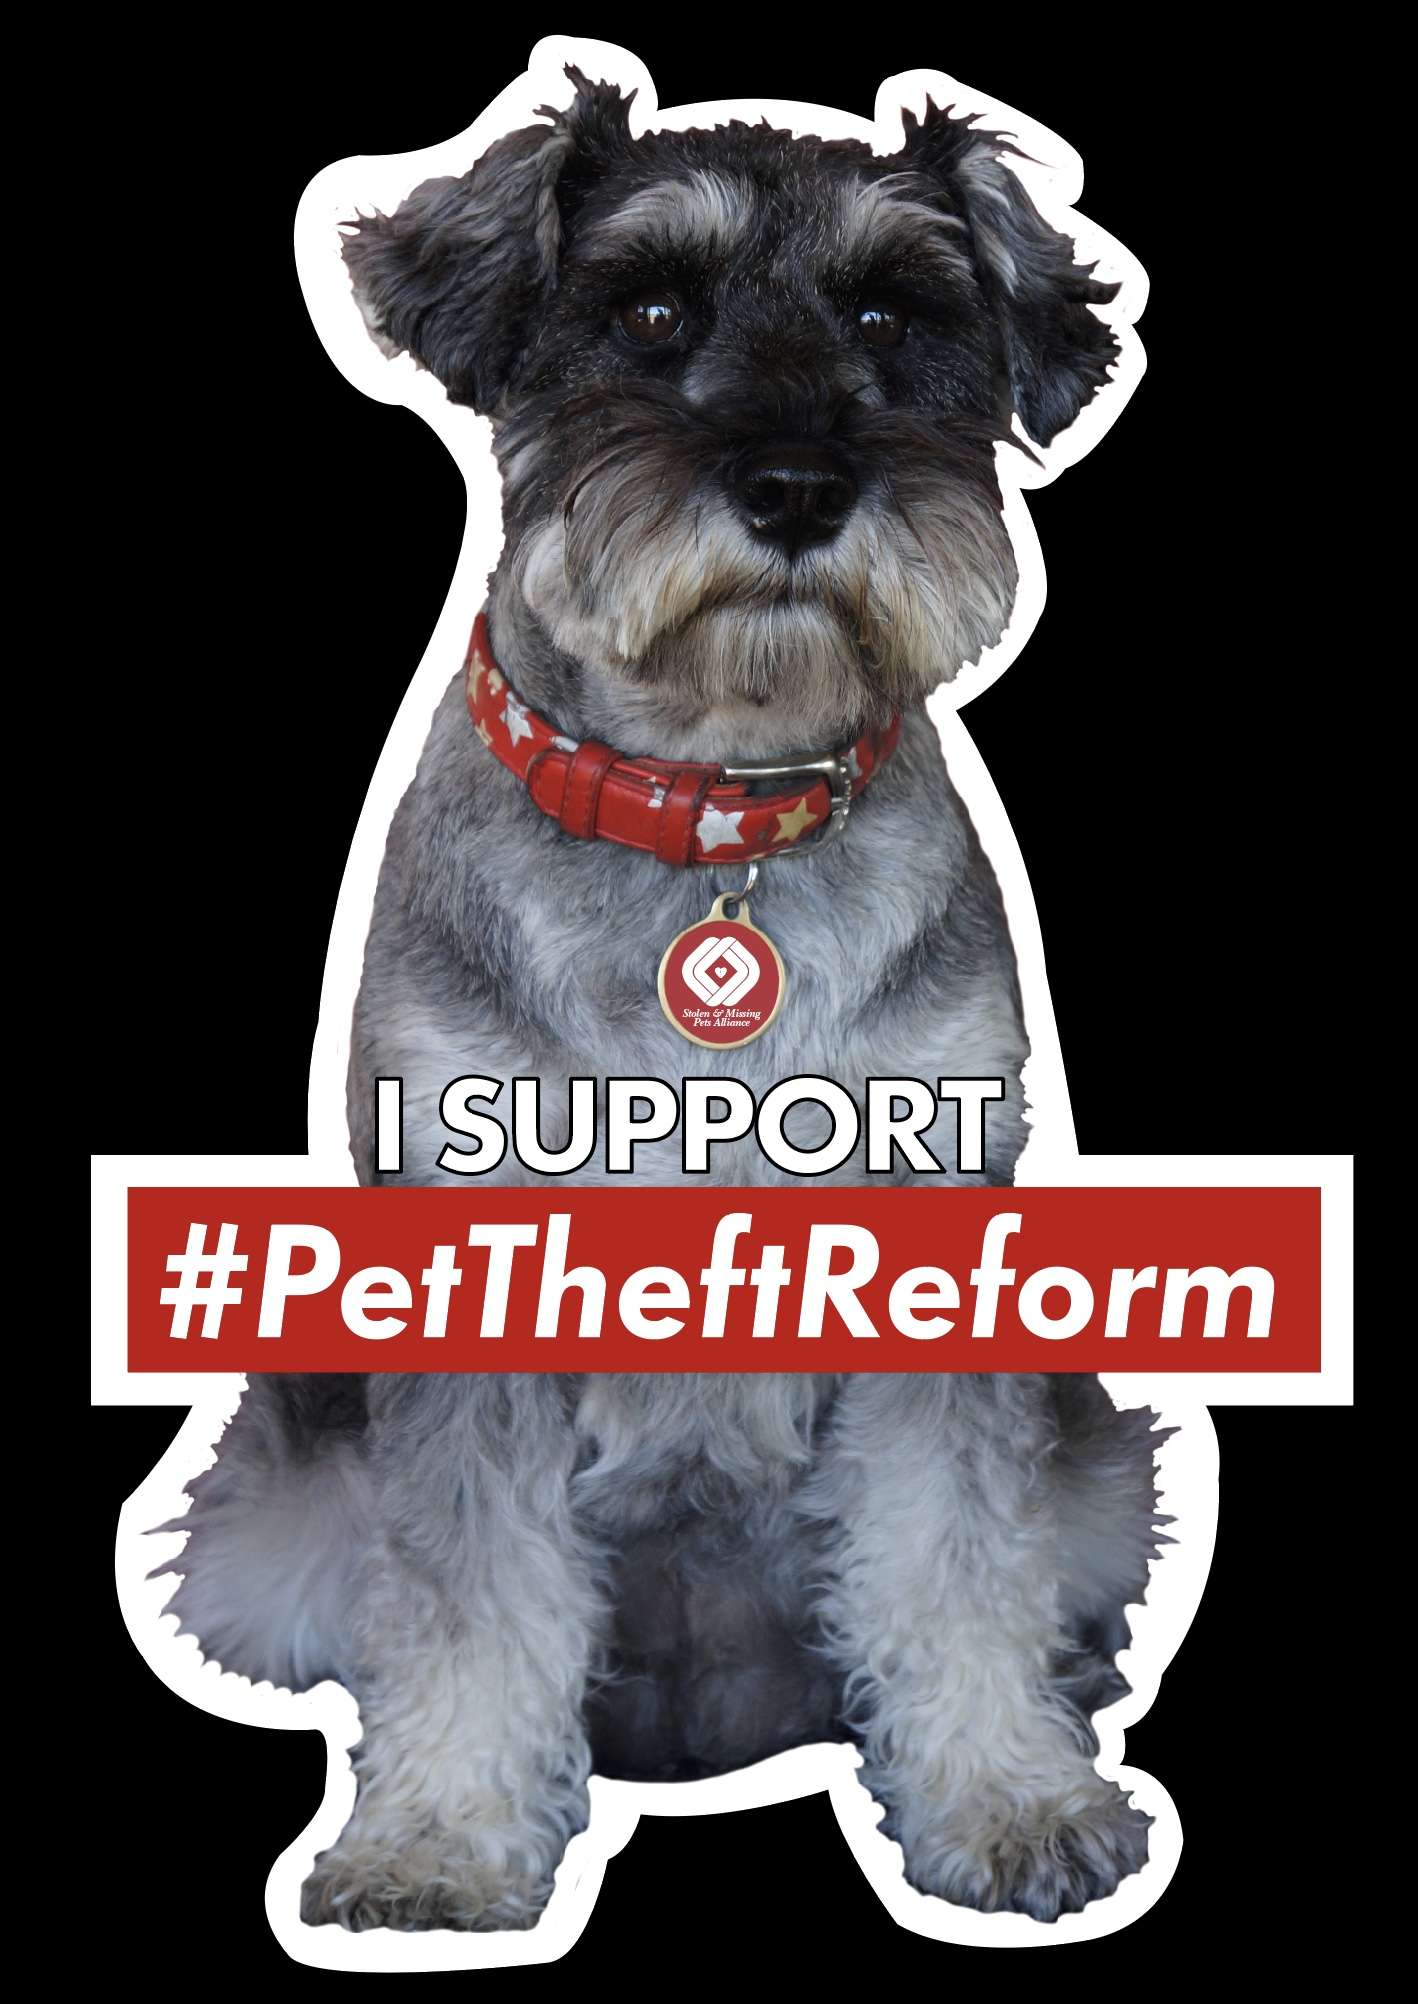 Time for some MYTH BUSTING! #PetTheftReform